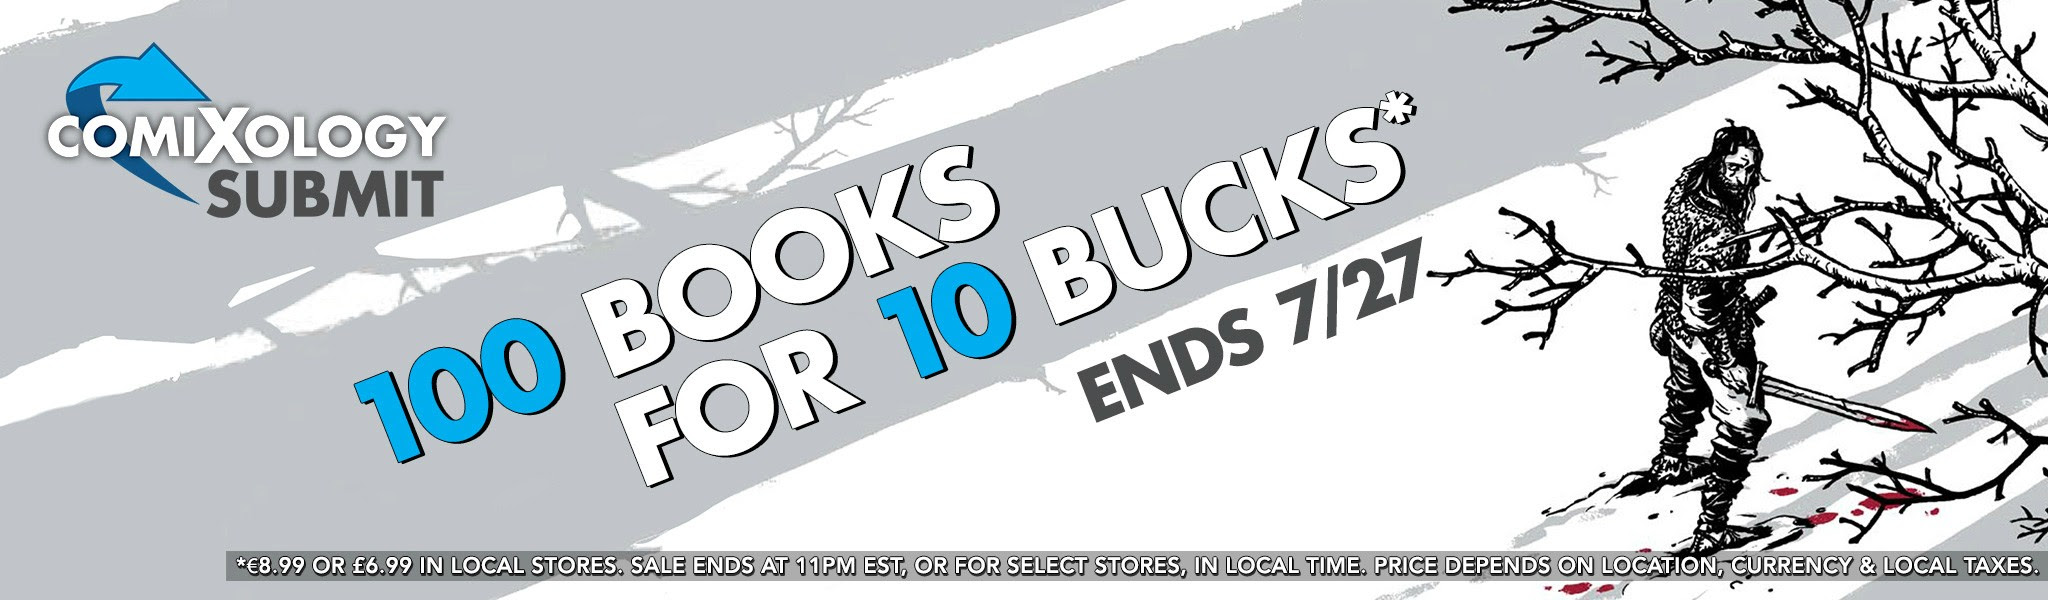 ComiXology Celebrates 5 Years with a Bundle of 100 Books for Ten Bucks!